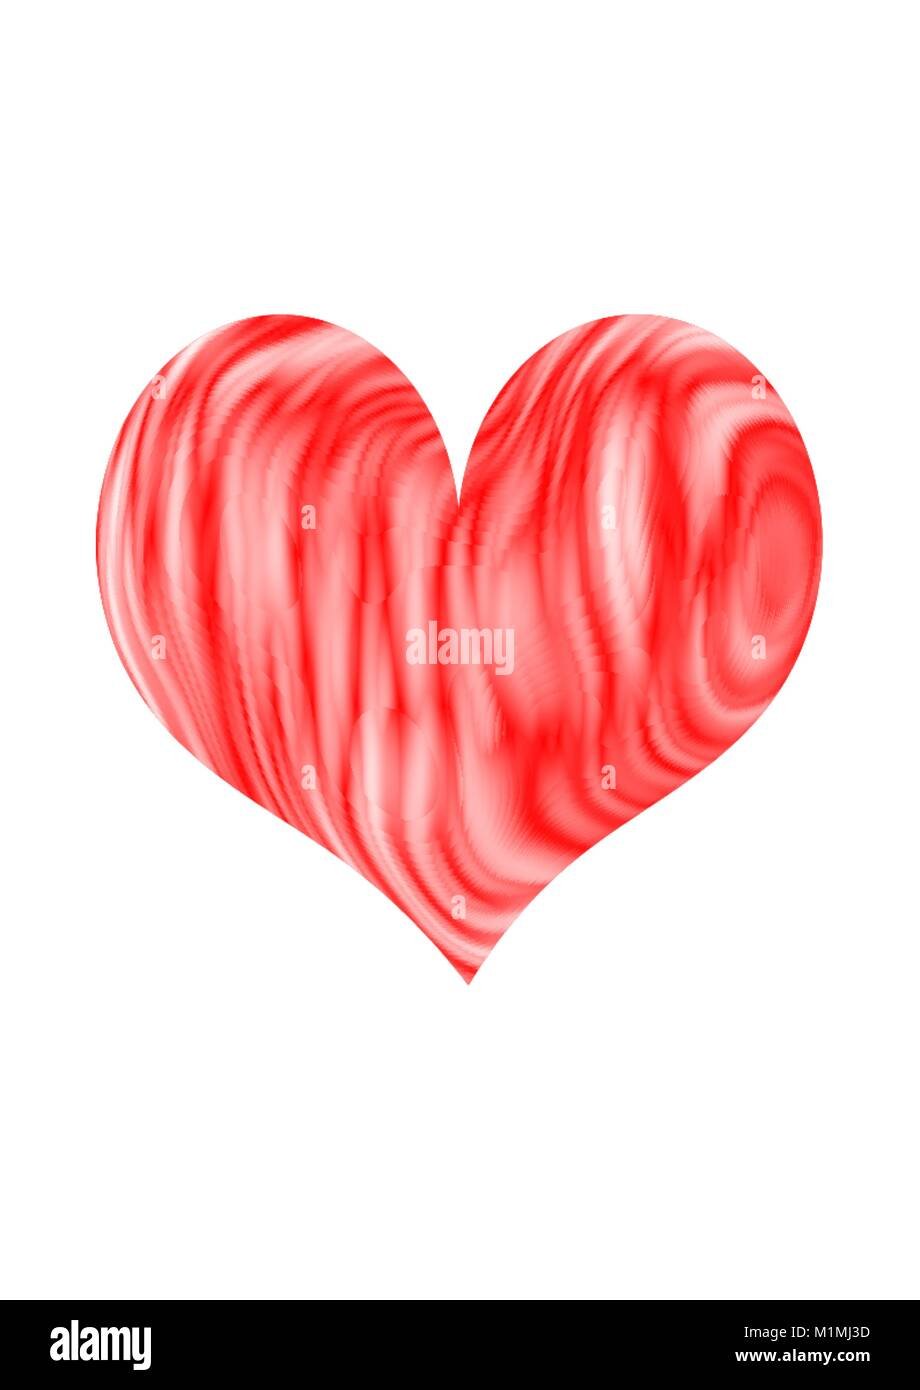 Red and White Swirl Heart On Plain Background - Stock Image